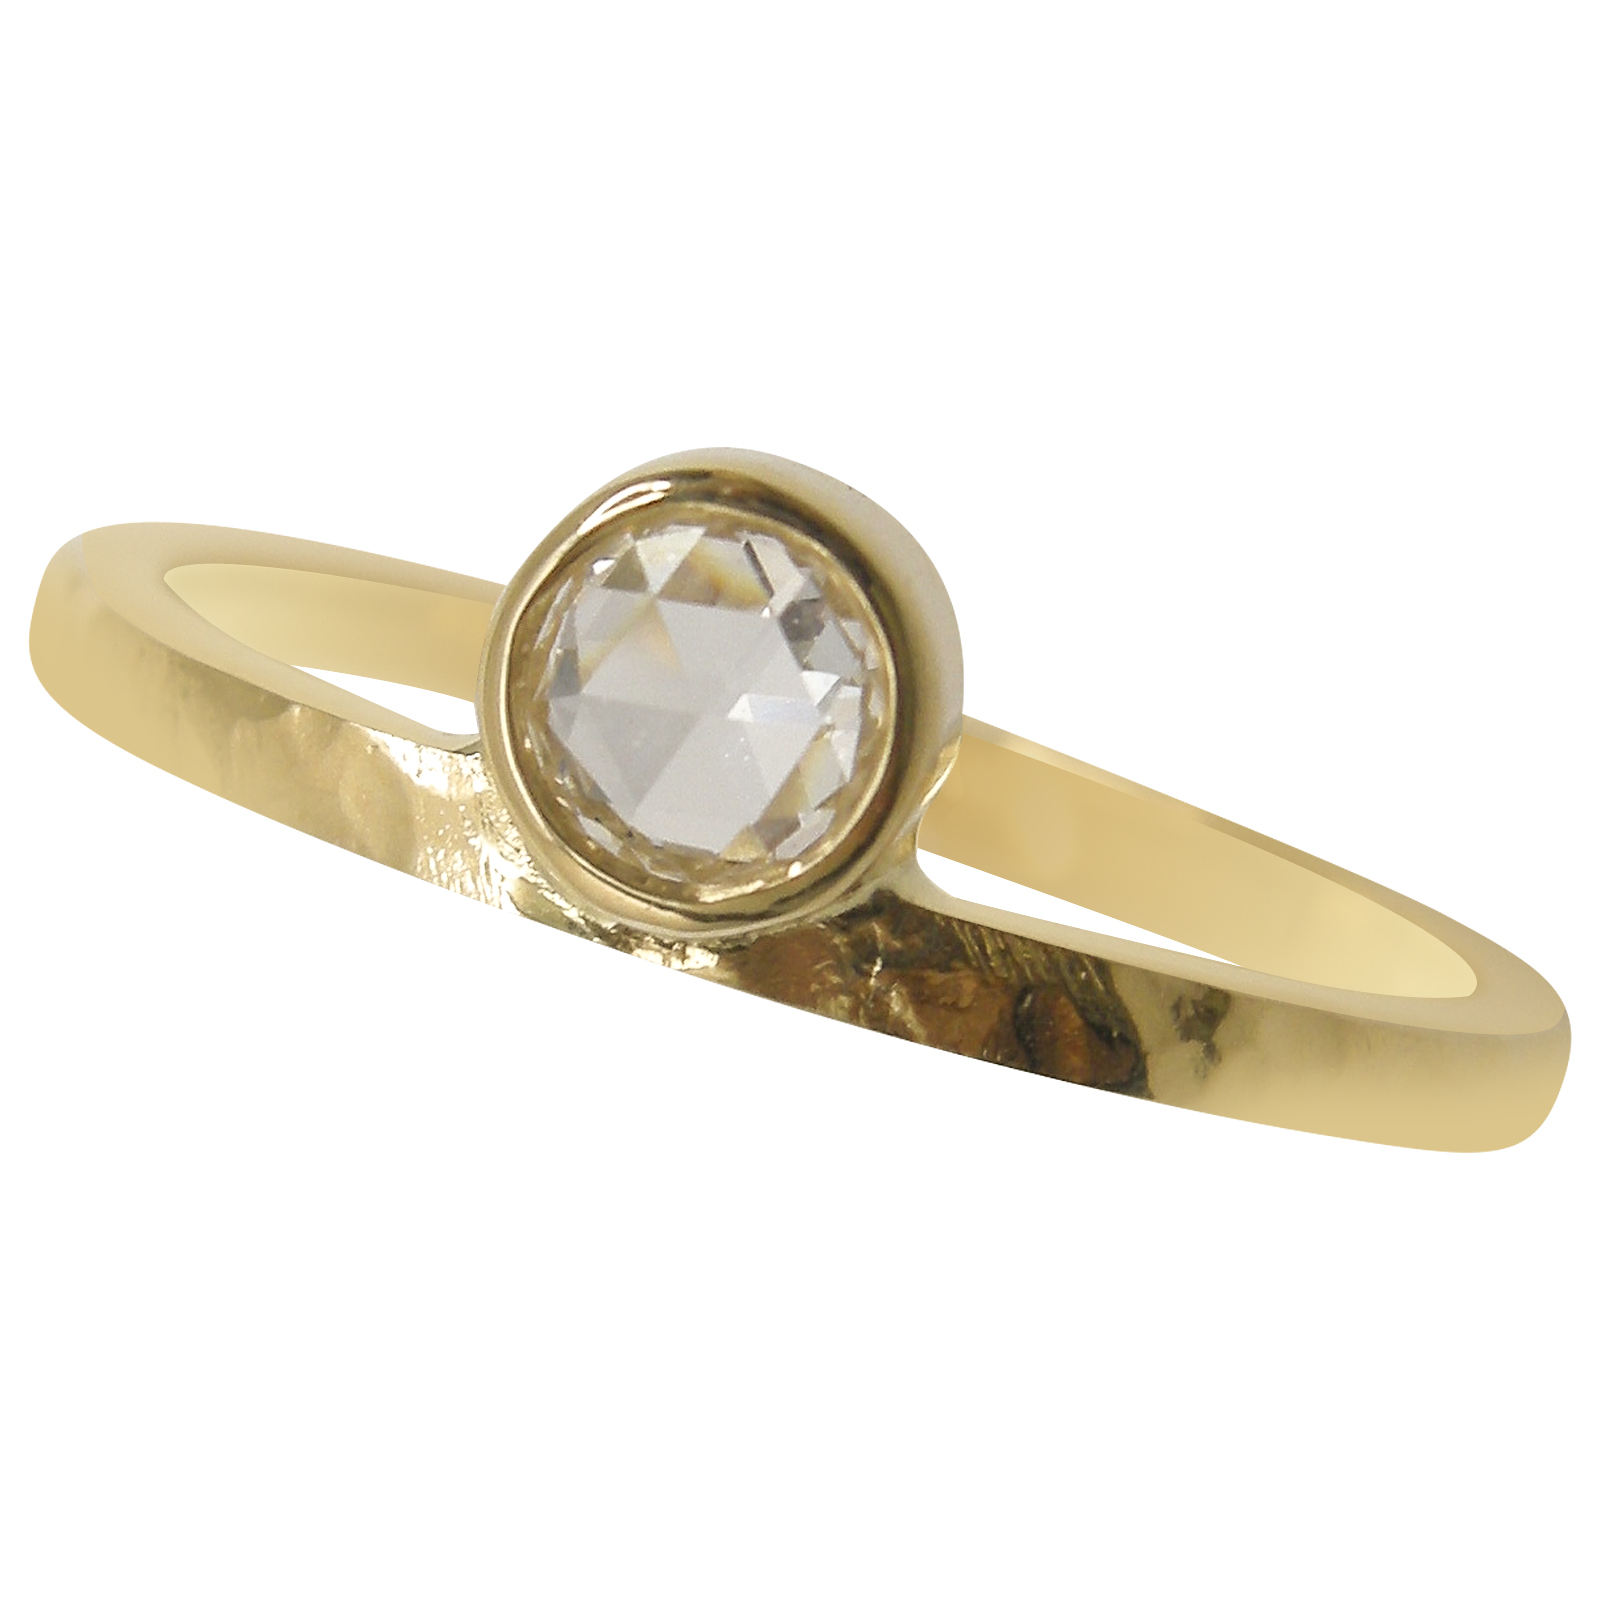 ROSE CUT SOLITAIRE HAMMERED FINISH RING BESPOKE FINE JEWELLERY BY SHAHINA HATTA